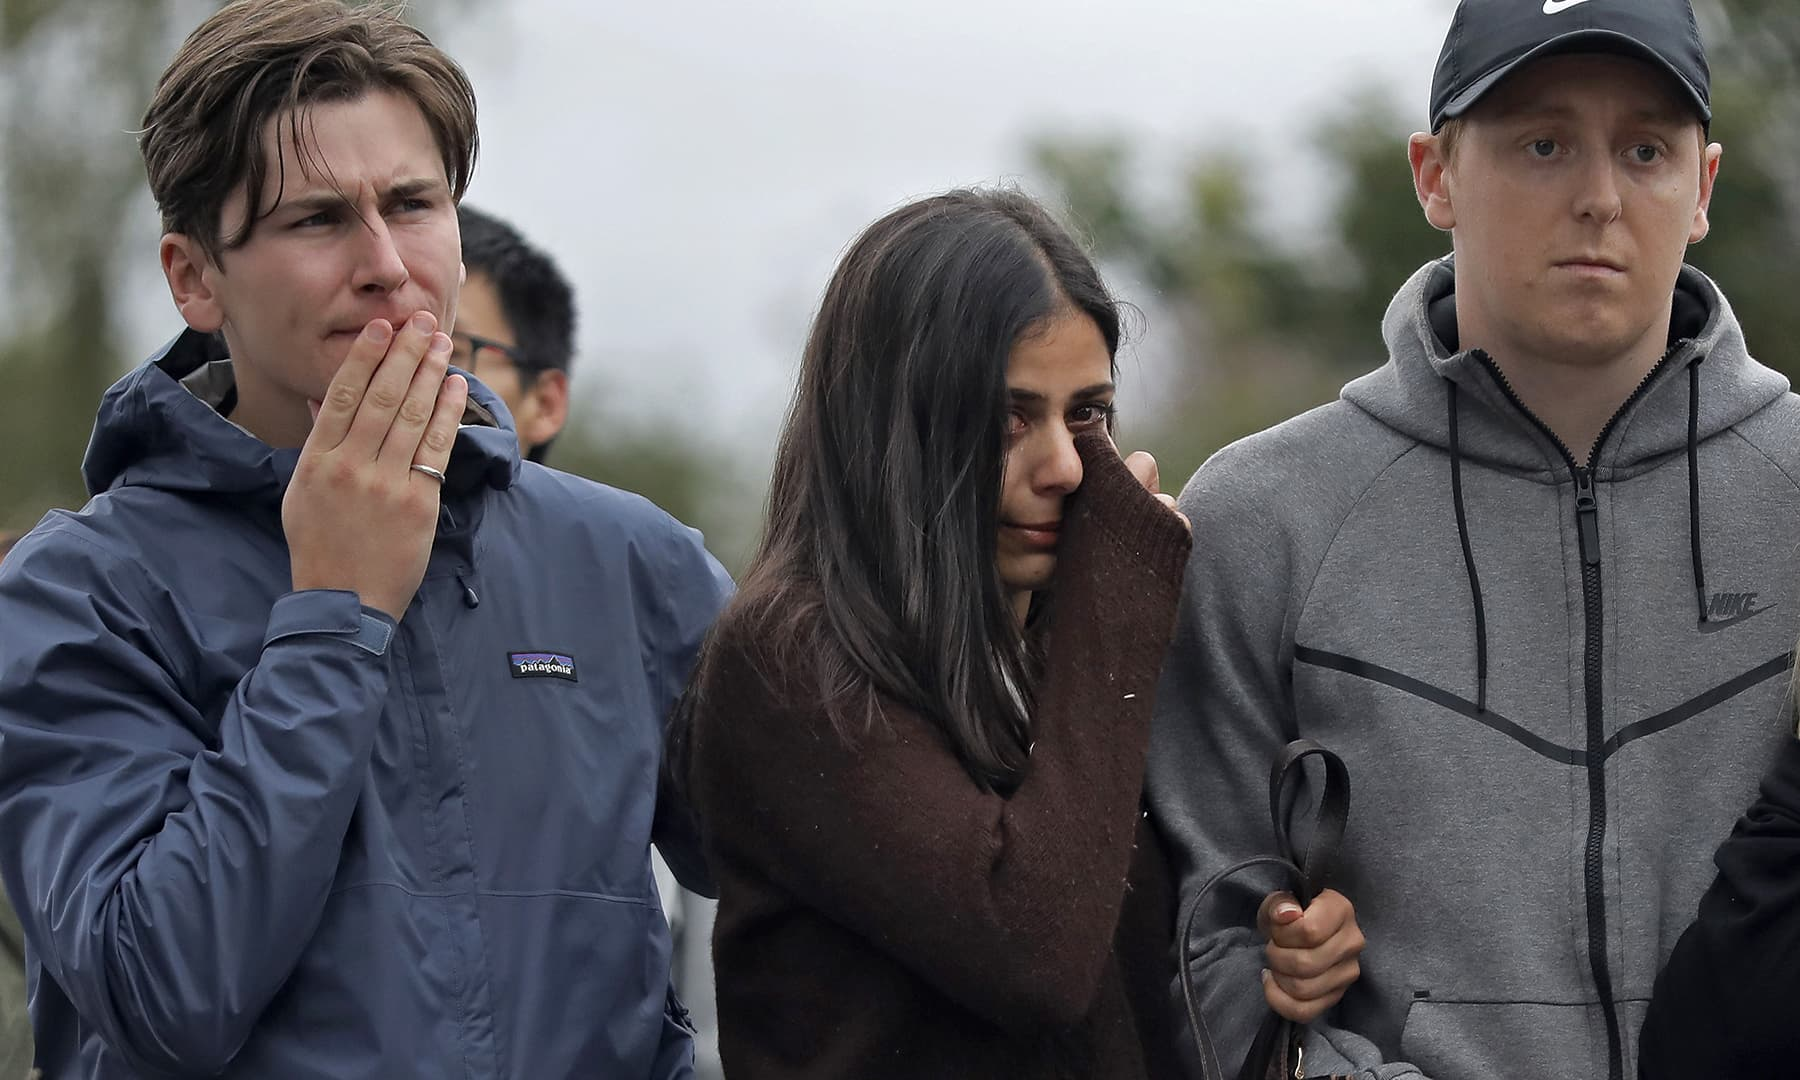 Residents gather together to mourn the loss of fellow New Zealanders at a makeshift memorial near the Masjid Al Noor mosque, Saturday, March 16, 2019, Christchurch, New Zealand. — AP